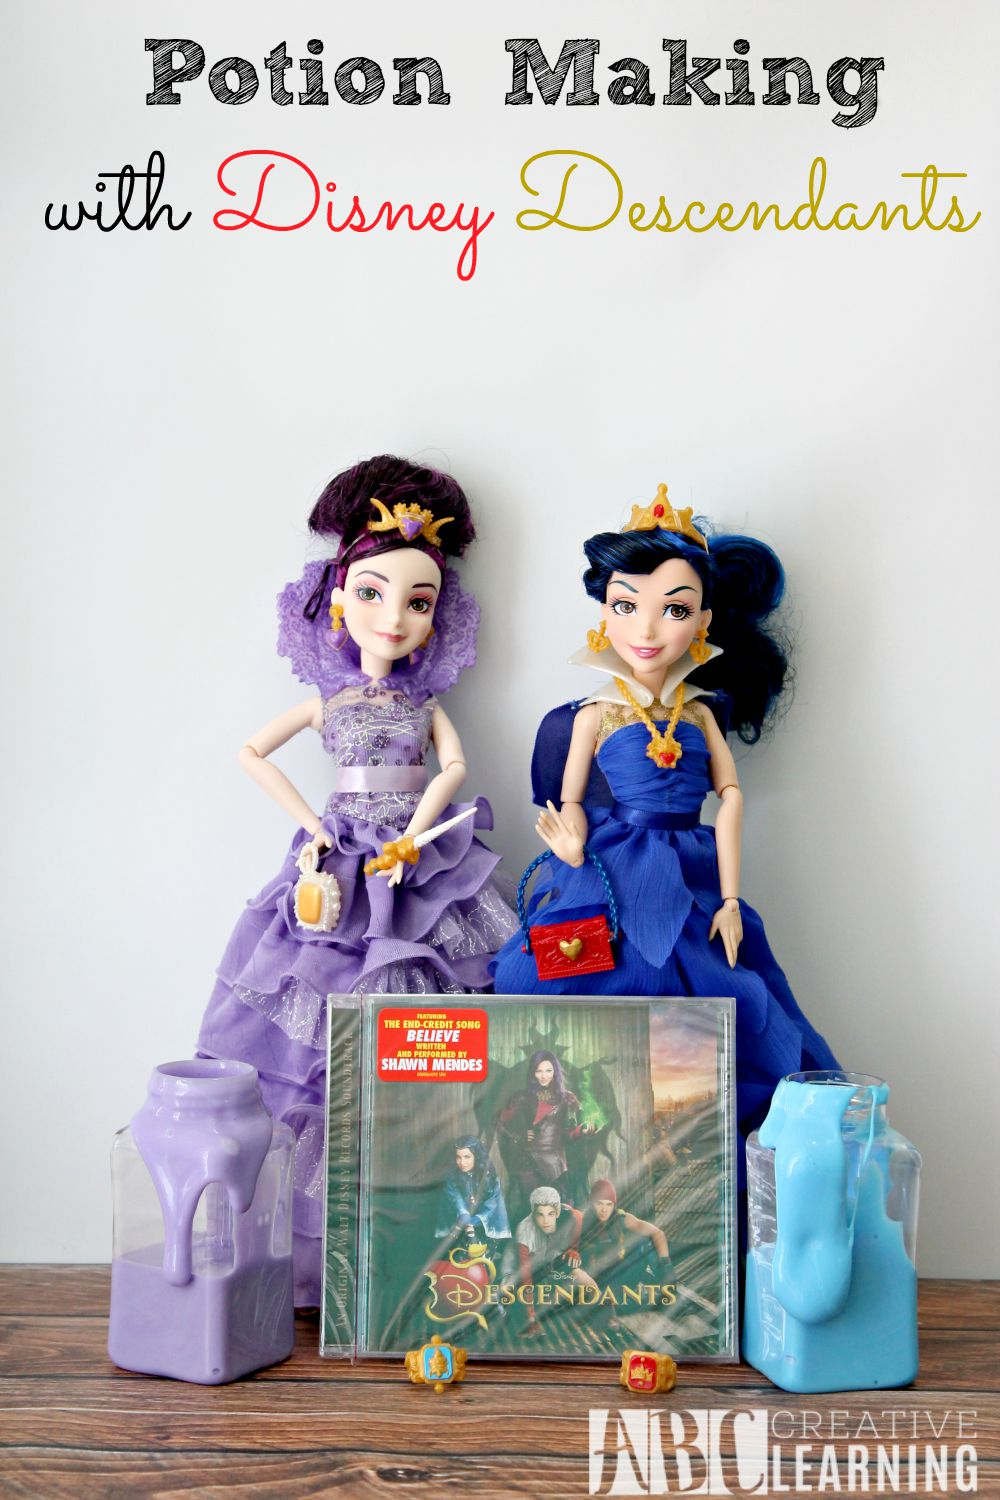 Potion Making with Disney Descendants